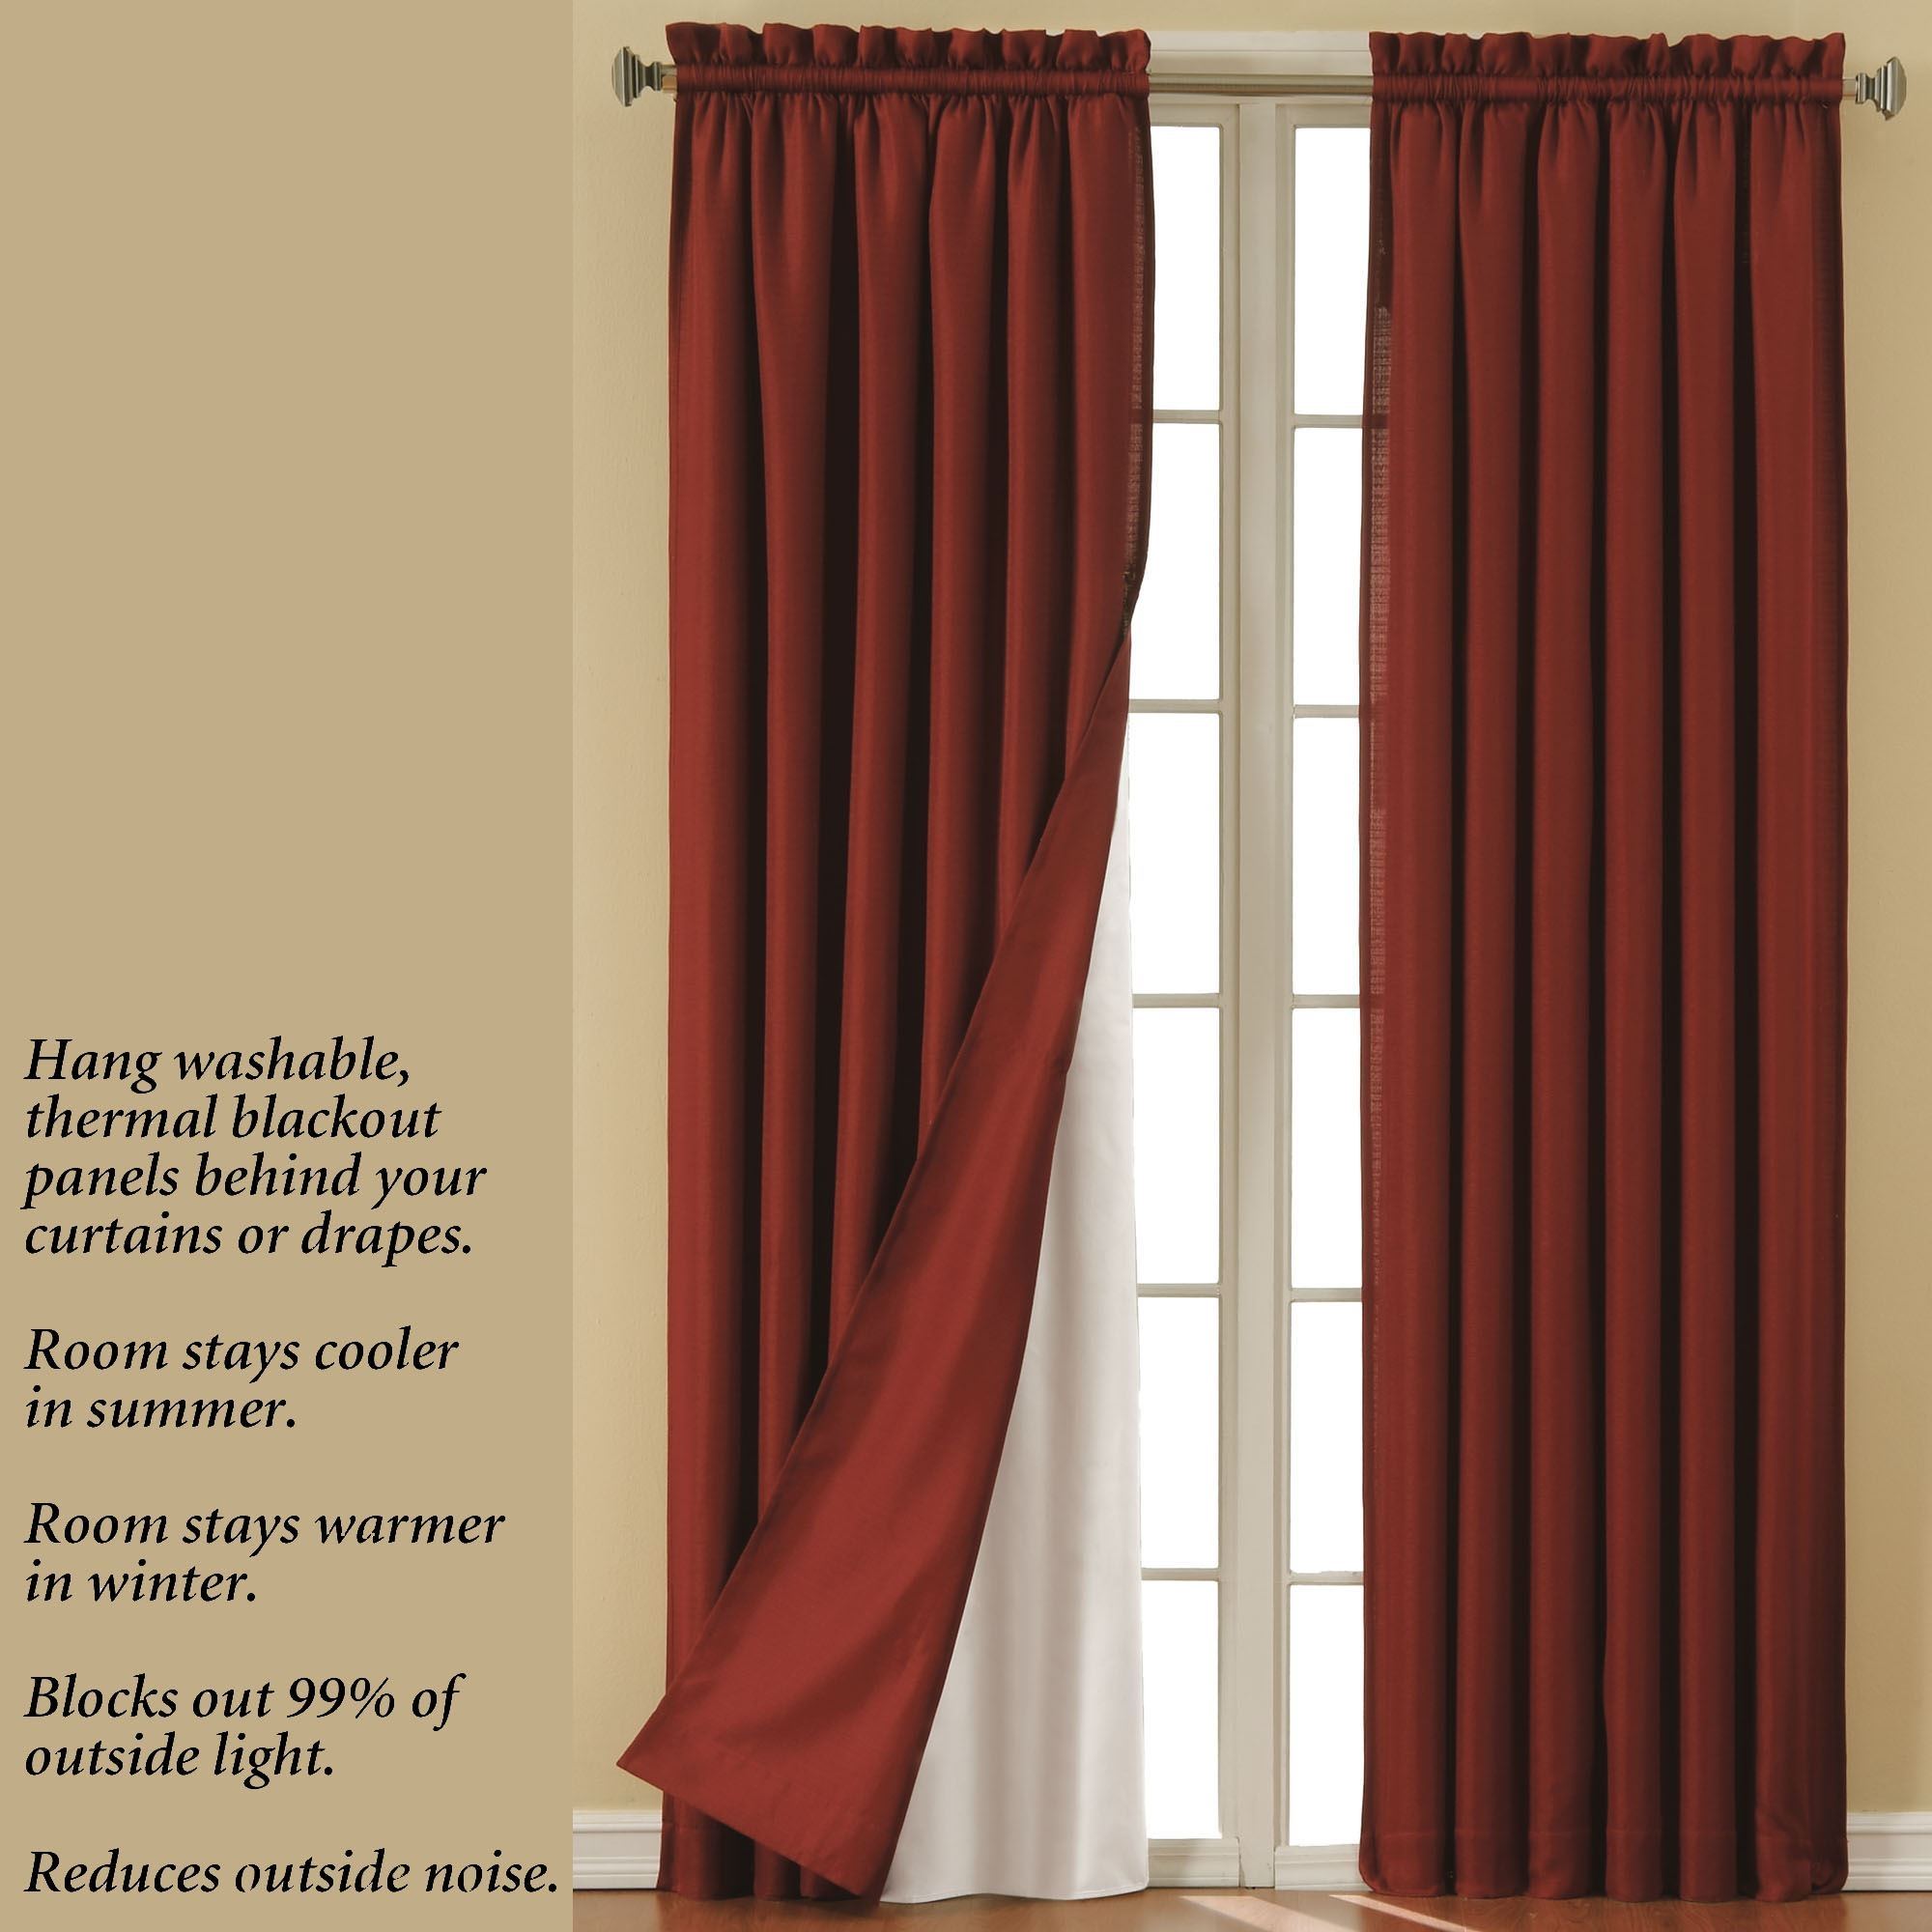 Eclipsetm Thermaliner Blackout Curtain Panel Liners In Thermal And Blackout Curtains (Image 11 of 15)